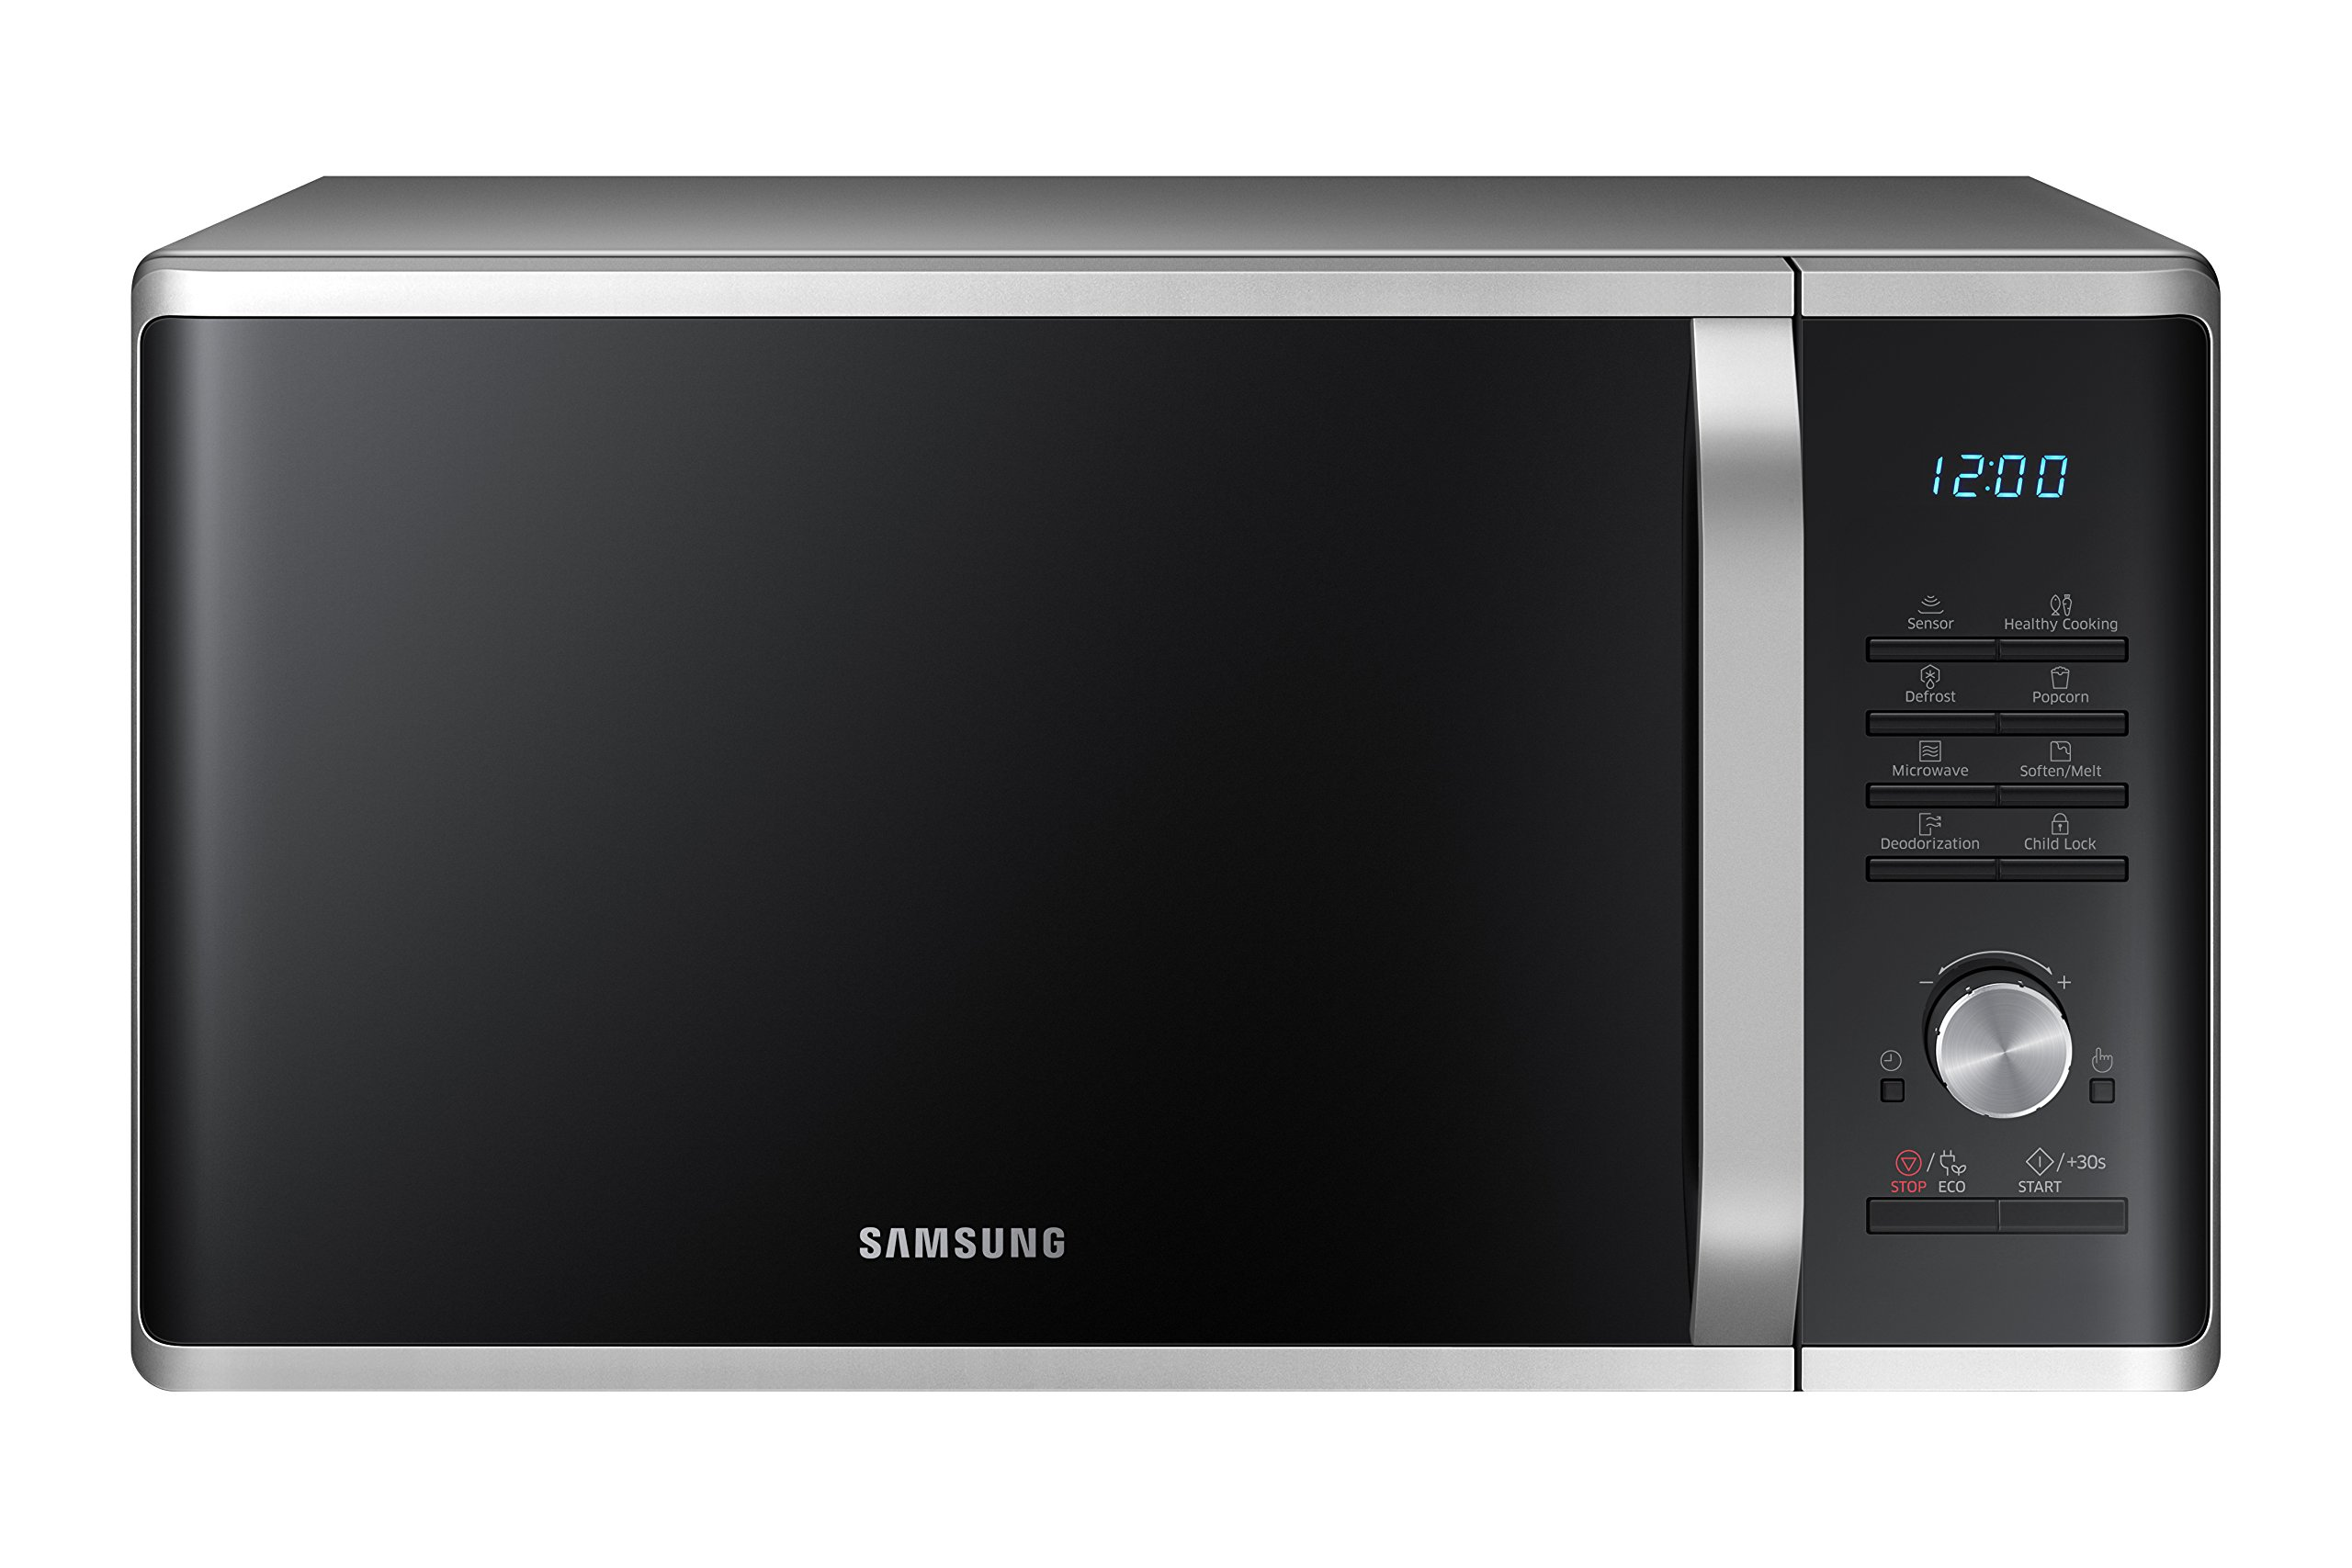 Samsung MS11K3000AS 1.1 cu. ft. Countertop Microwave Oven with Sensor and Ceramic Enamel Interior, Silver Sand by Samsung